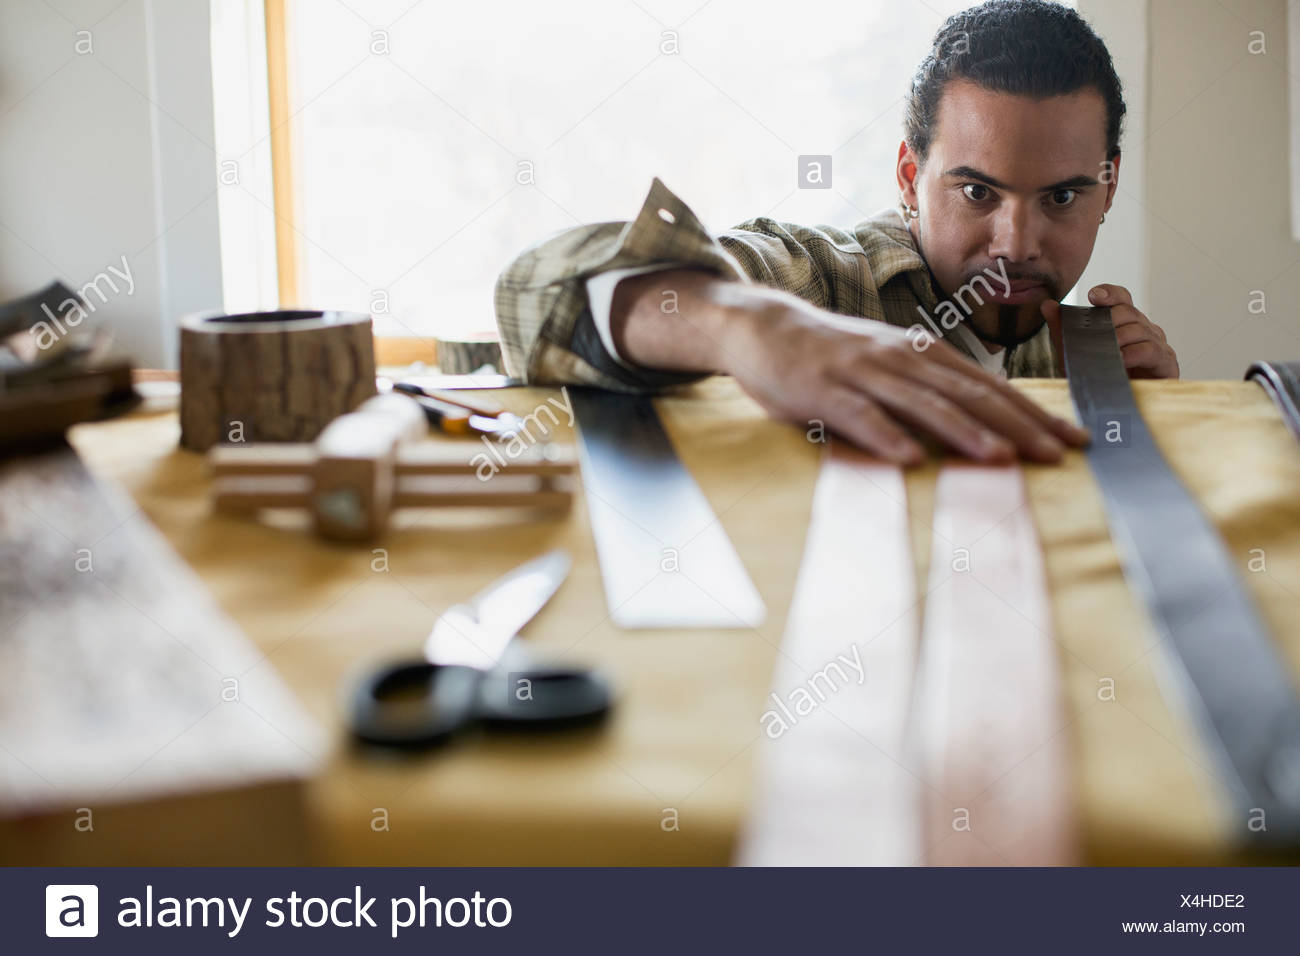 Man examining belts at leather workshop - Stock Image